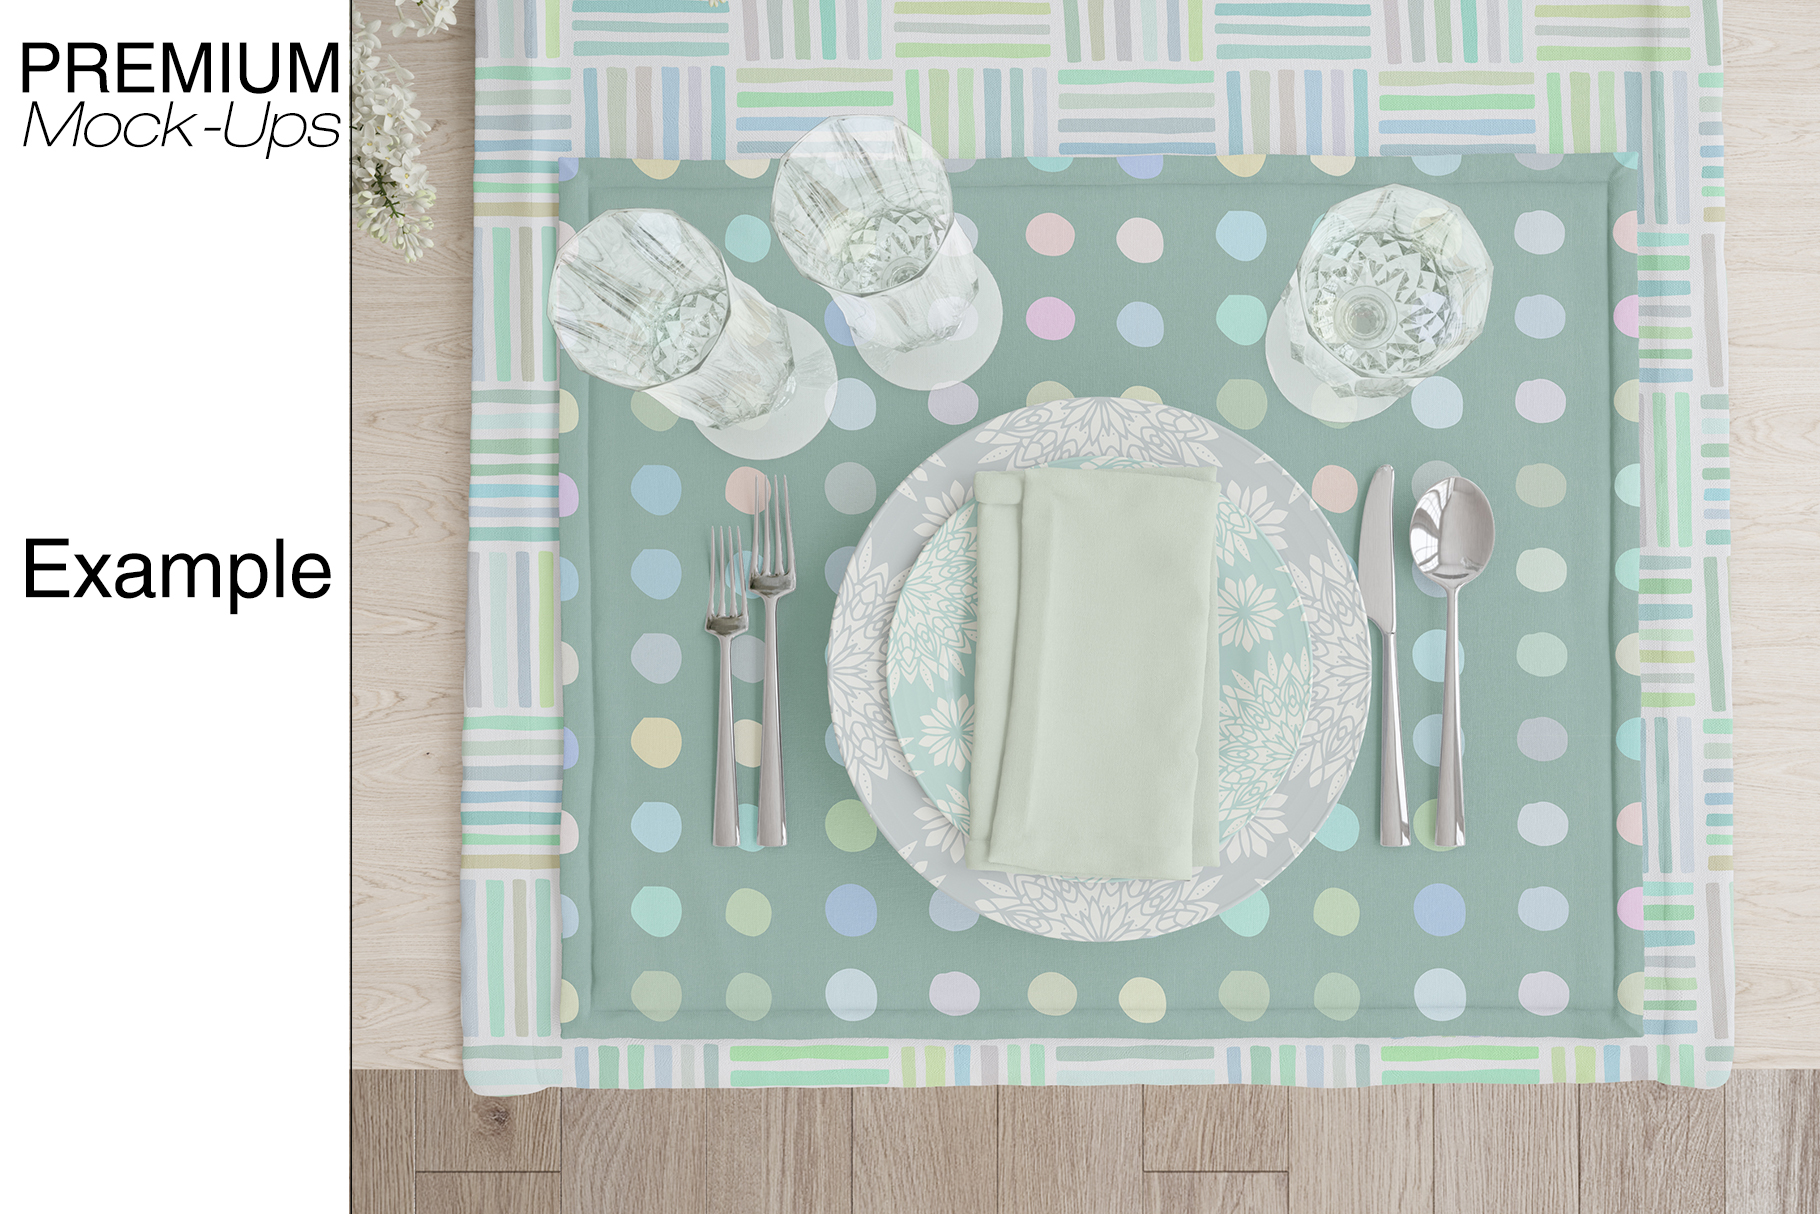 Tablecloth, Runner, Napkins & Plates example image 5